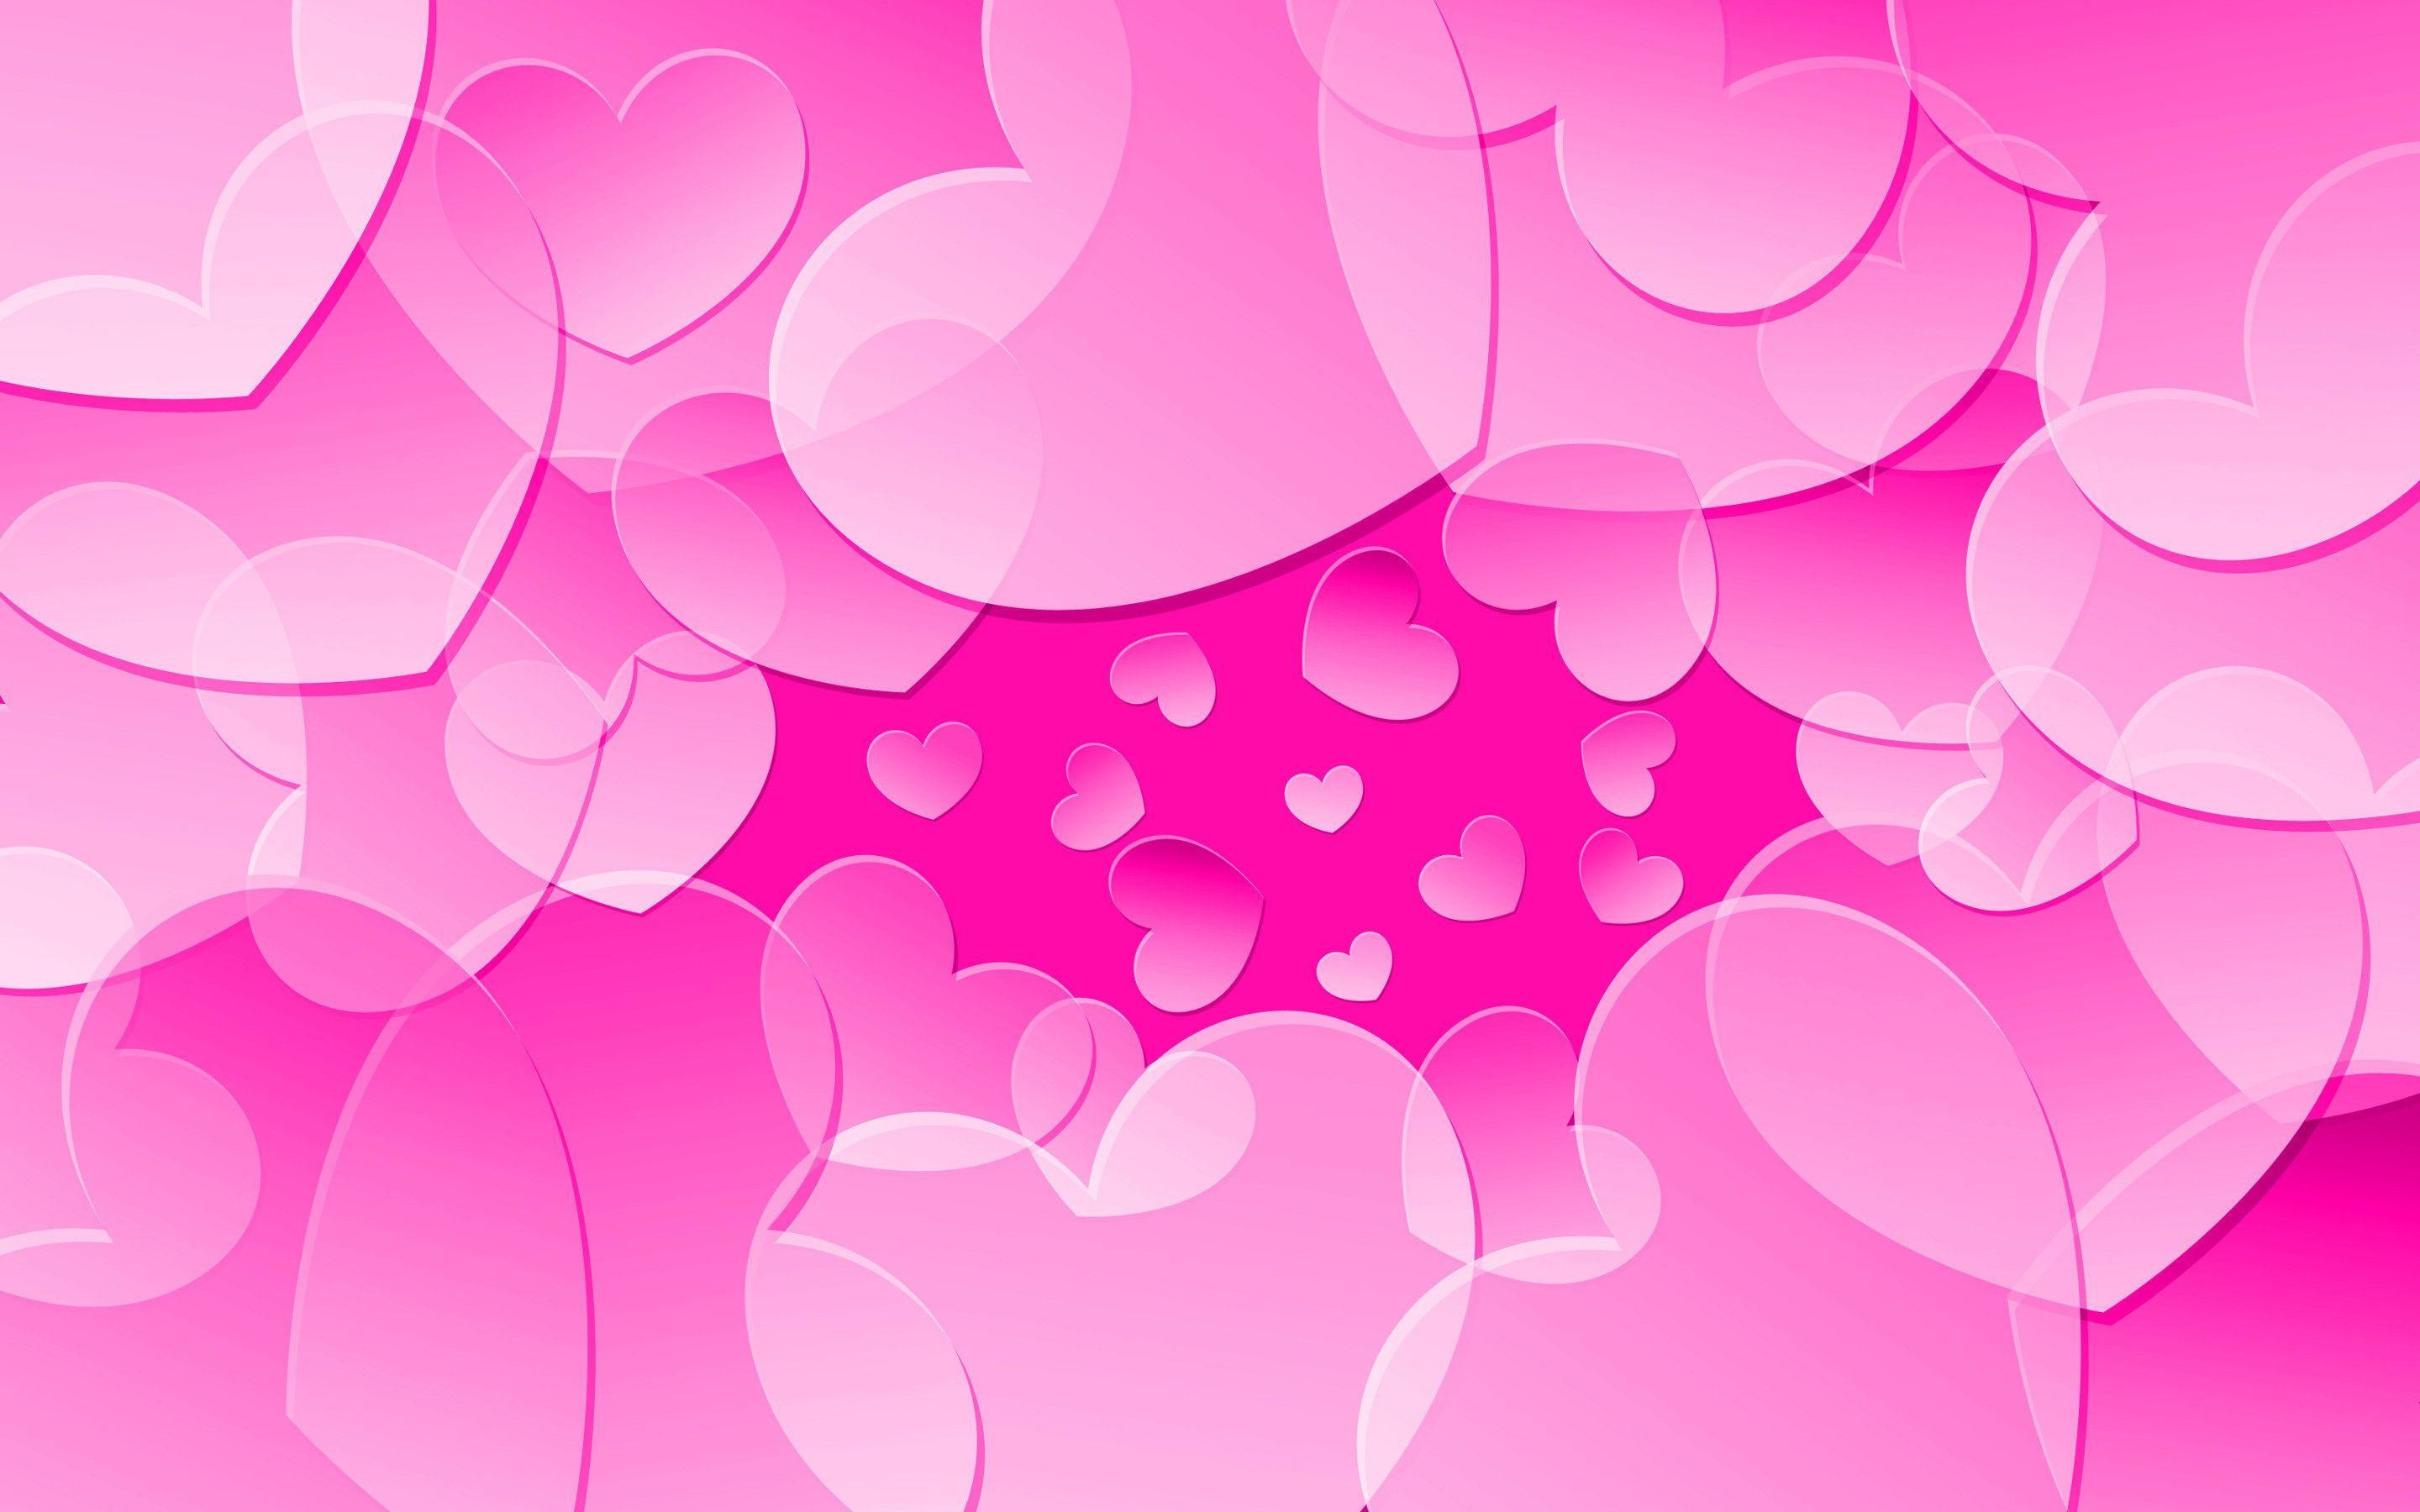 Res: 2880x1800, Most Downloaded Pink Hearts Wallpapers - Full HD wallpaper search